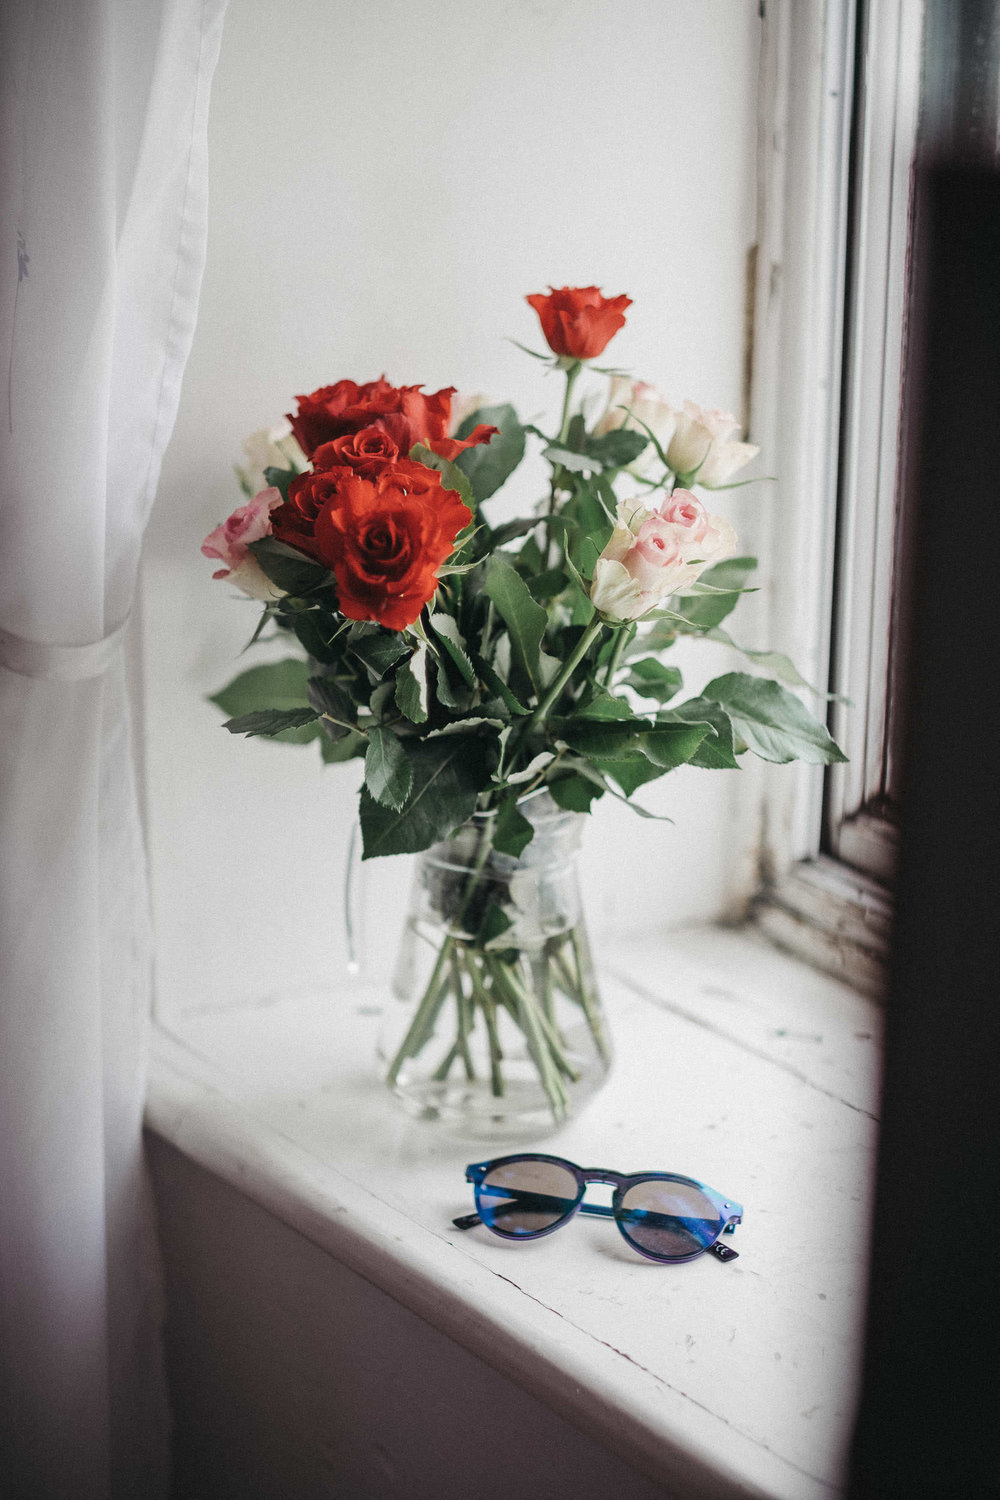 Roses on windowsill with sunglasses nearby